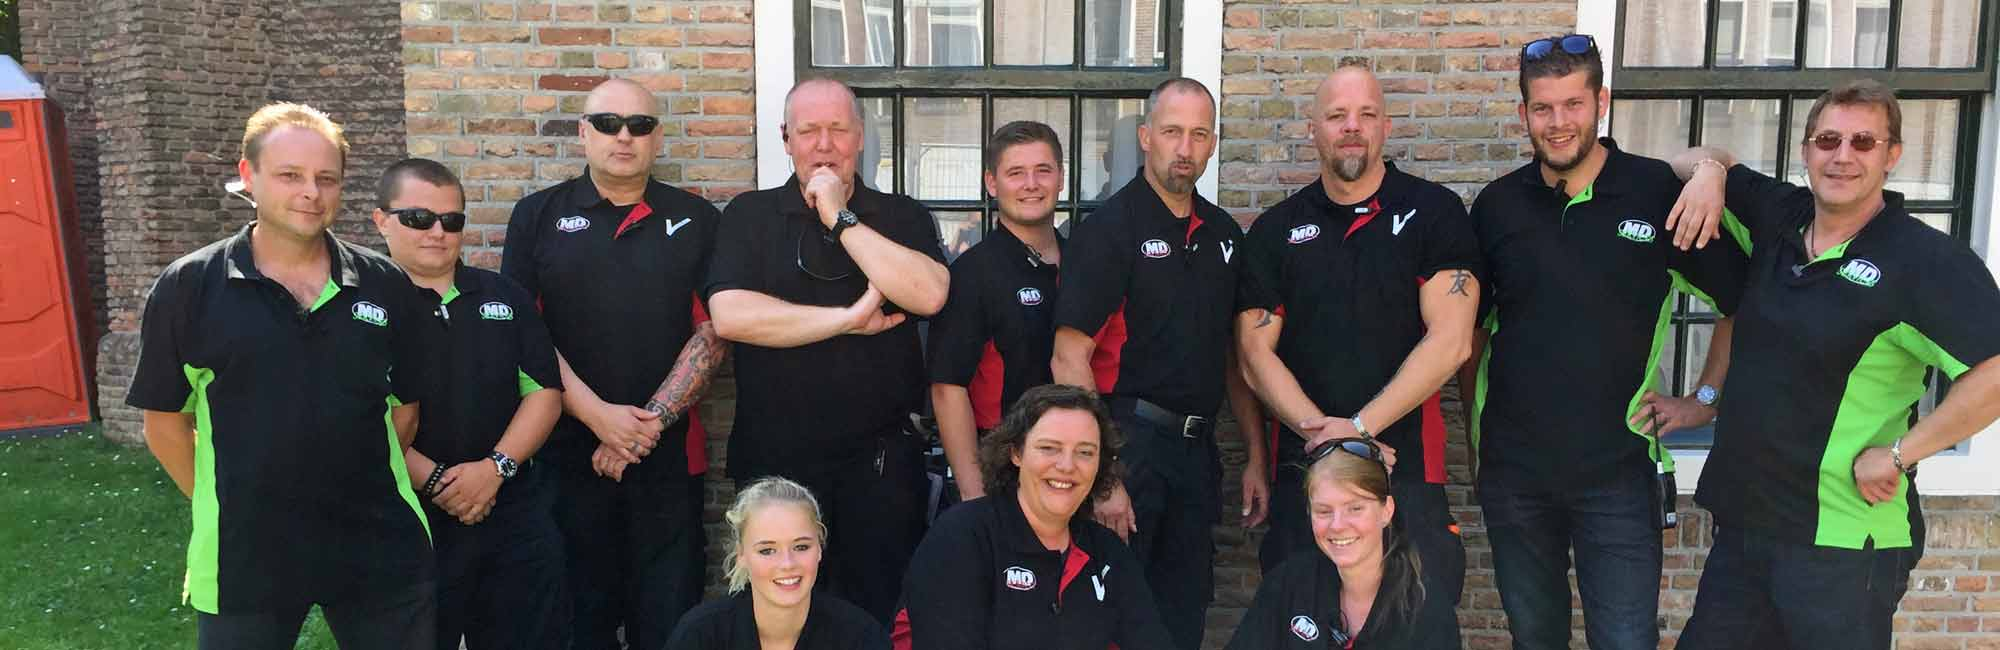 - MD Security, beveiliging Den Bosch